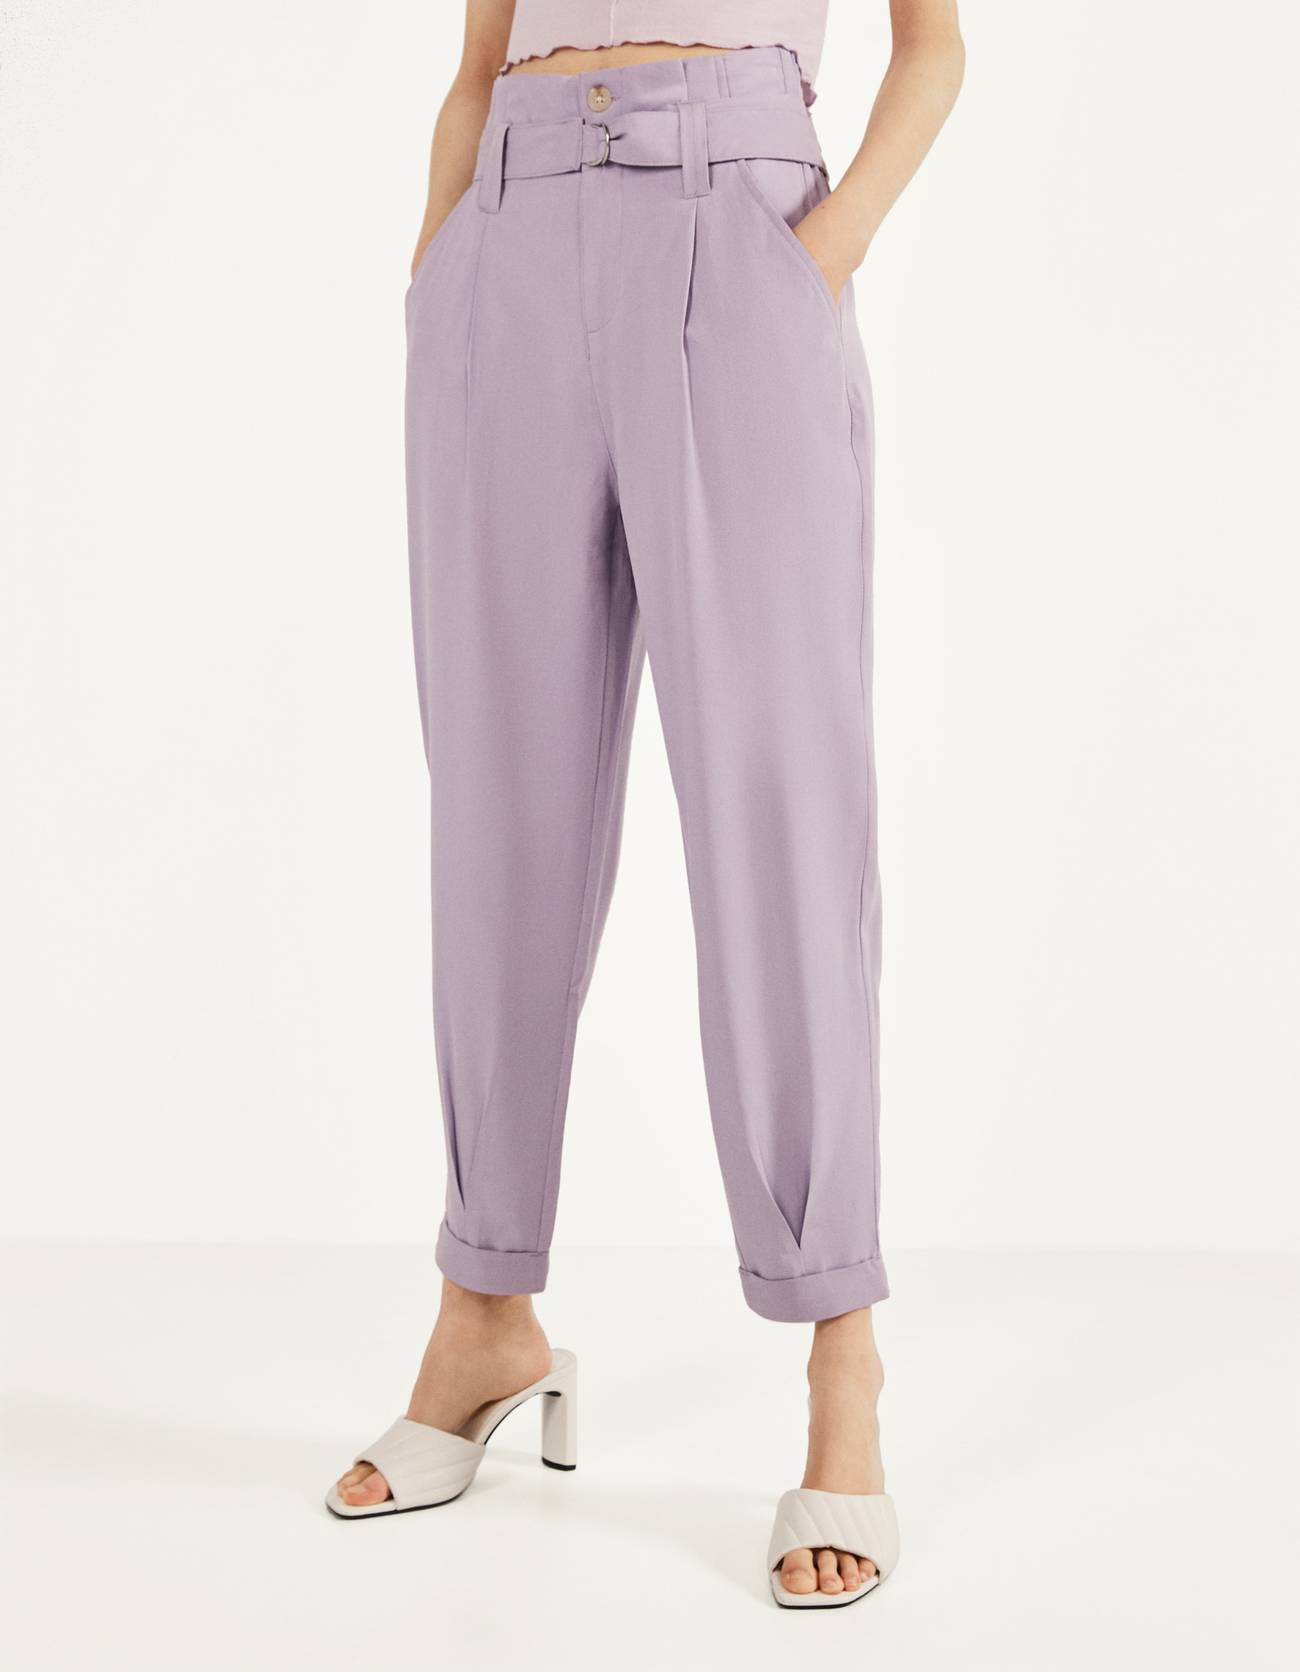 Tailored TENCEL ® trousers